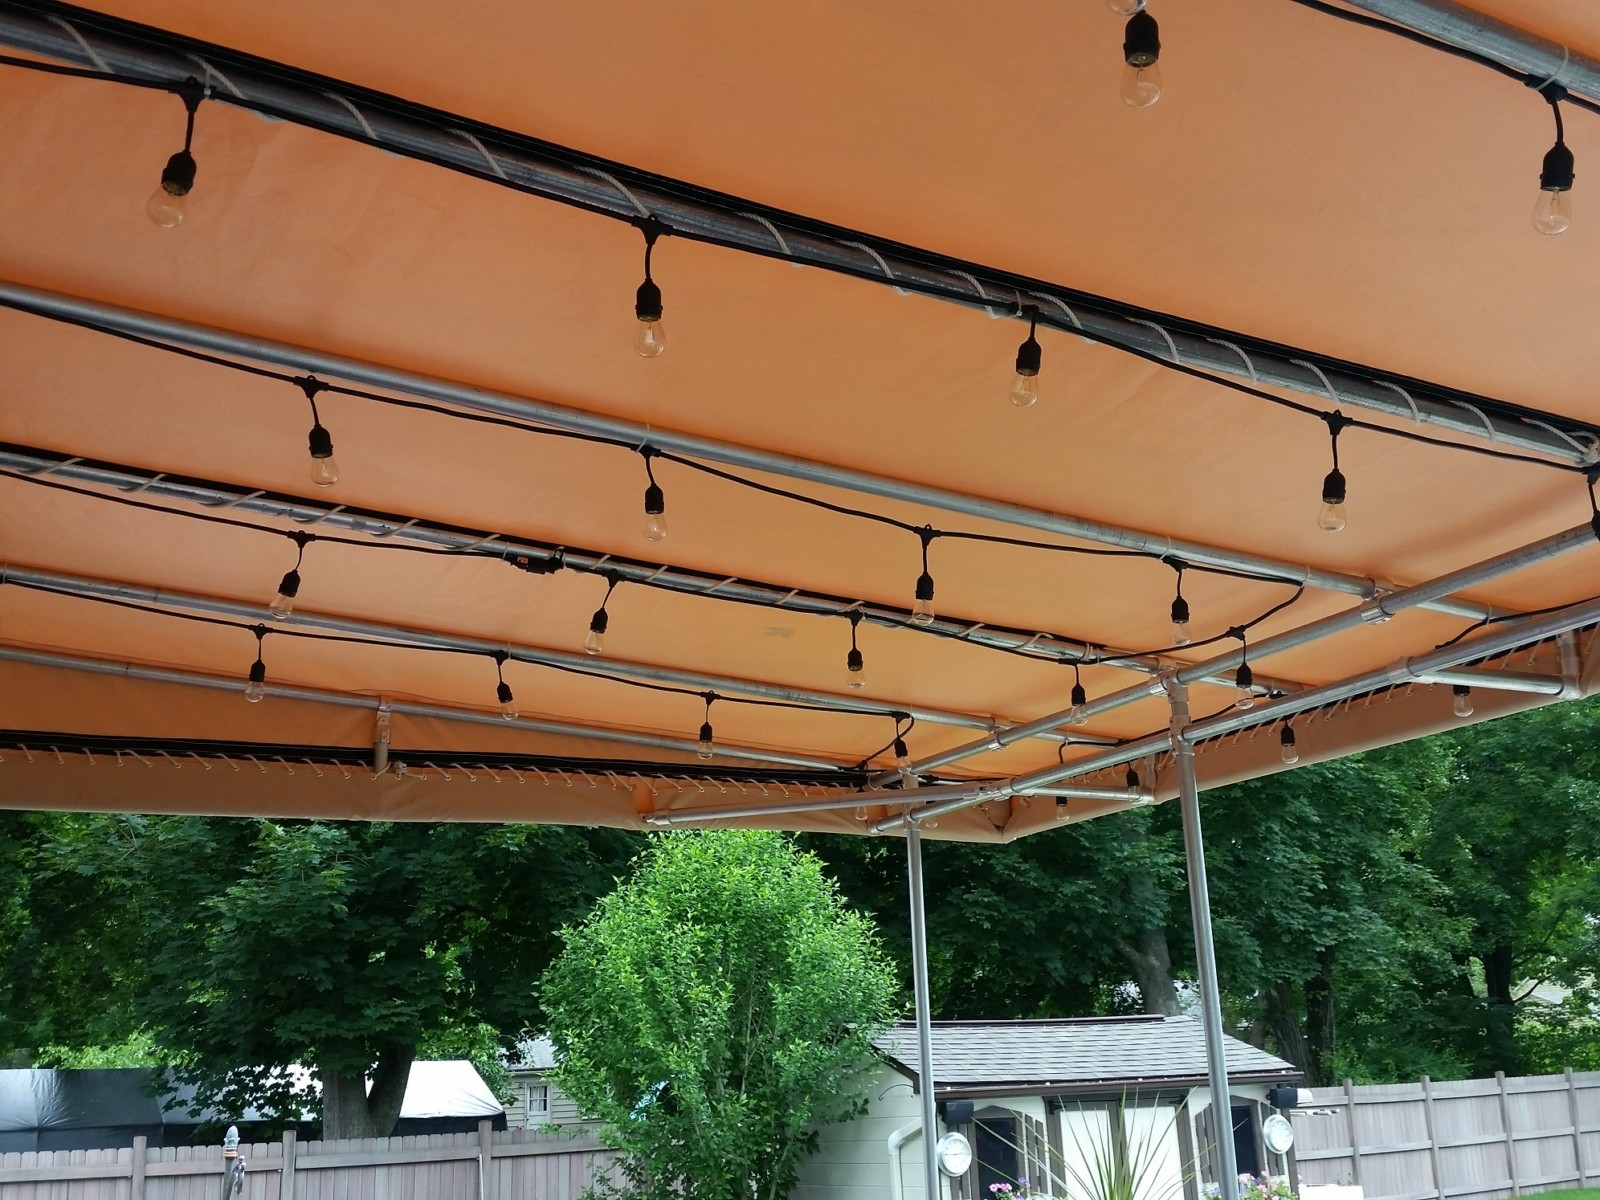 Vinyl Fabric Waterproof Canopy & Vinyl Fabric Waterproof Canopy - Chicago Canvas u0026 Supply